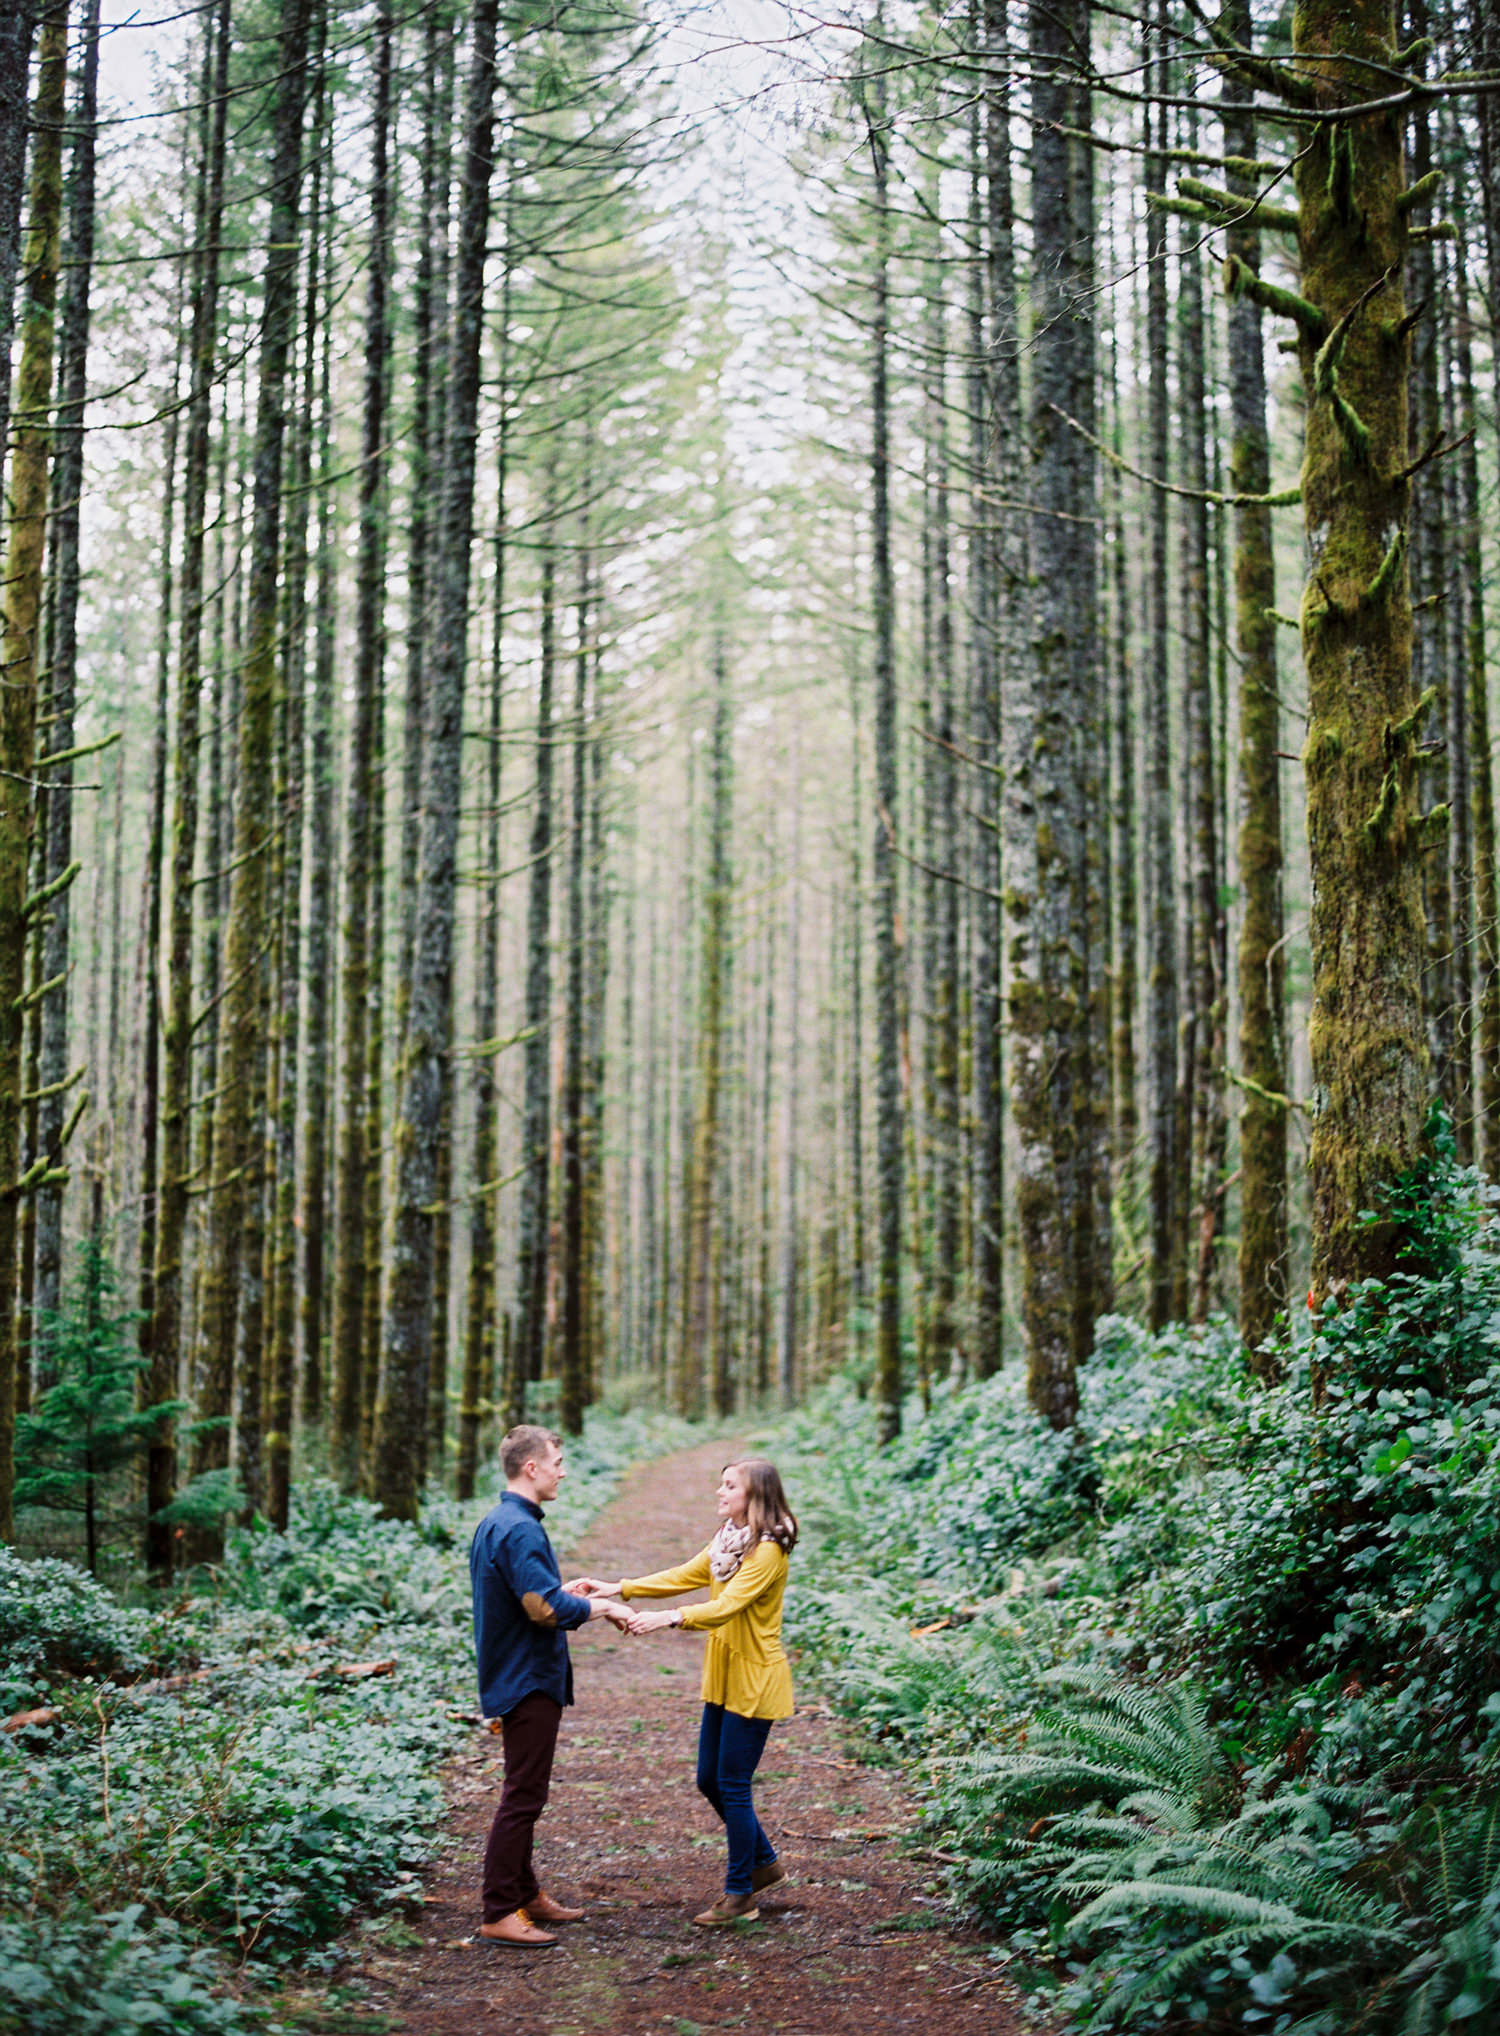 012-snoqualmie-mountain-engagement-session-seattle-film-wedding-photographer-ryan-flynn.jpg